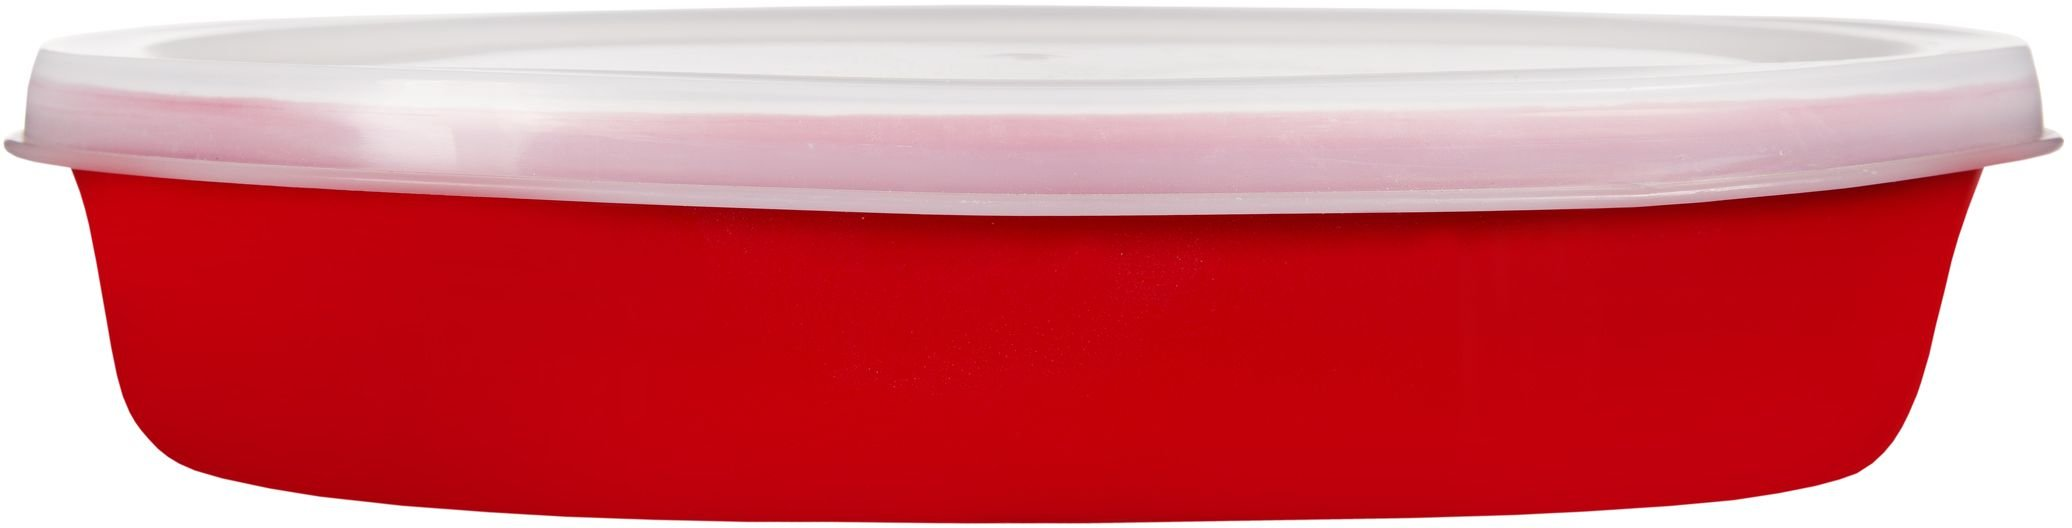 Home Essentials & Beyond Home Essentials Storage Essentials 12 oz Oval Baker with Lid, Red, Clear